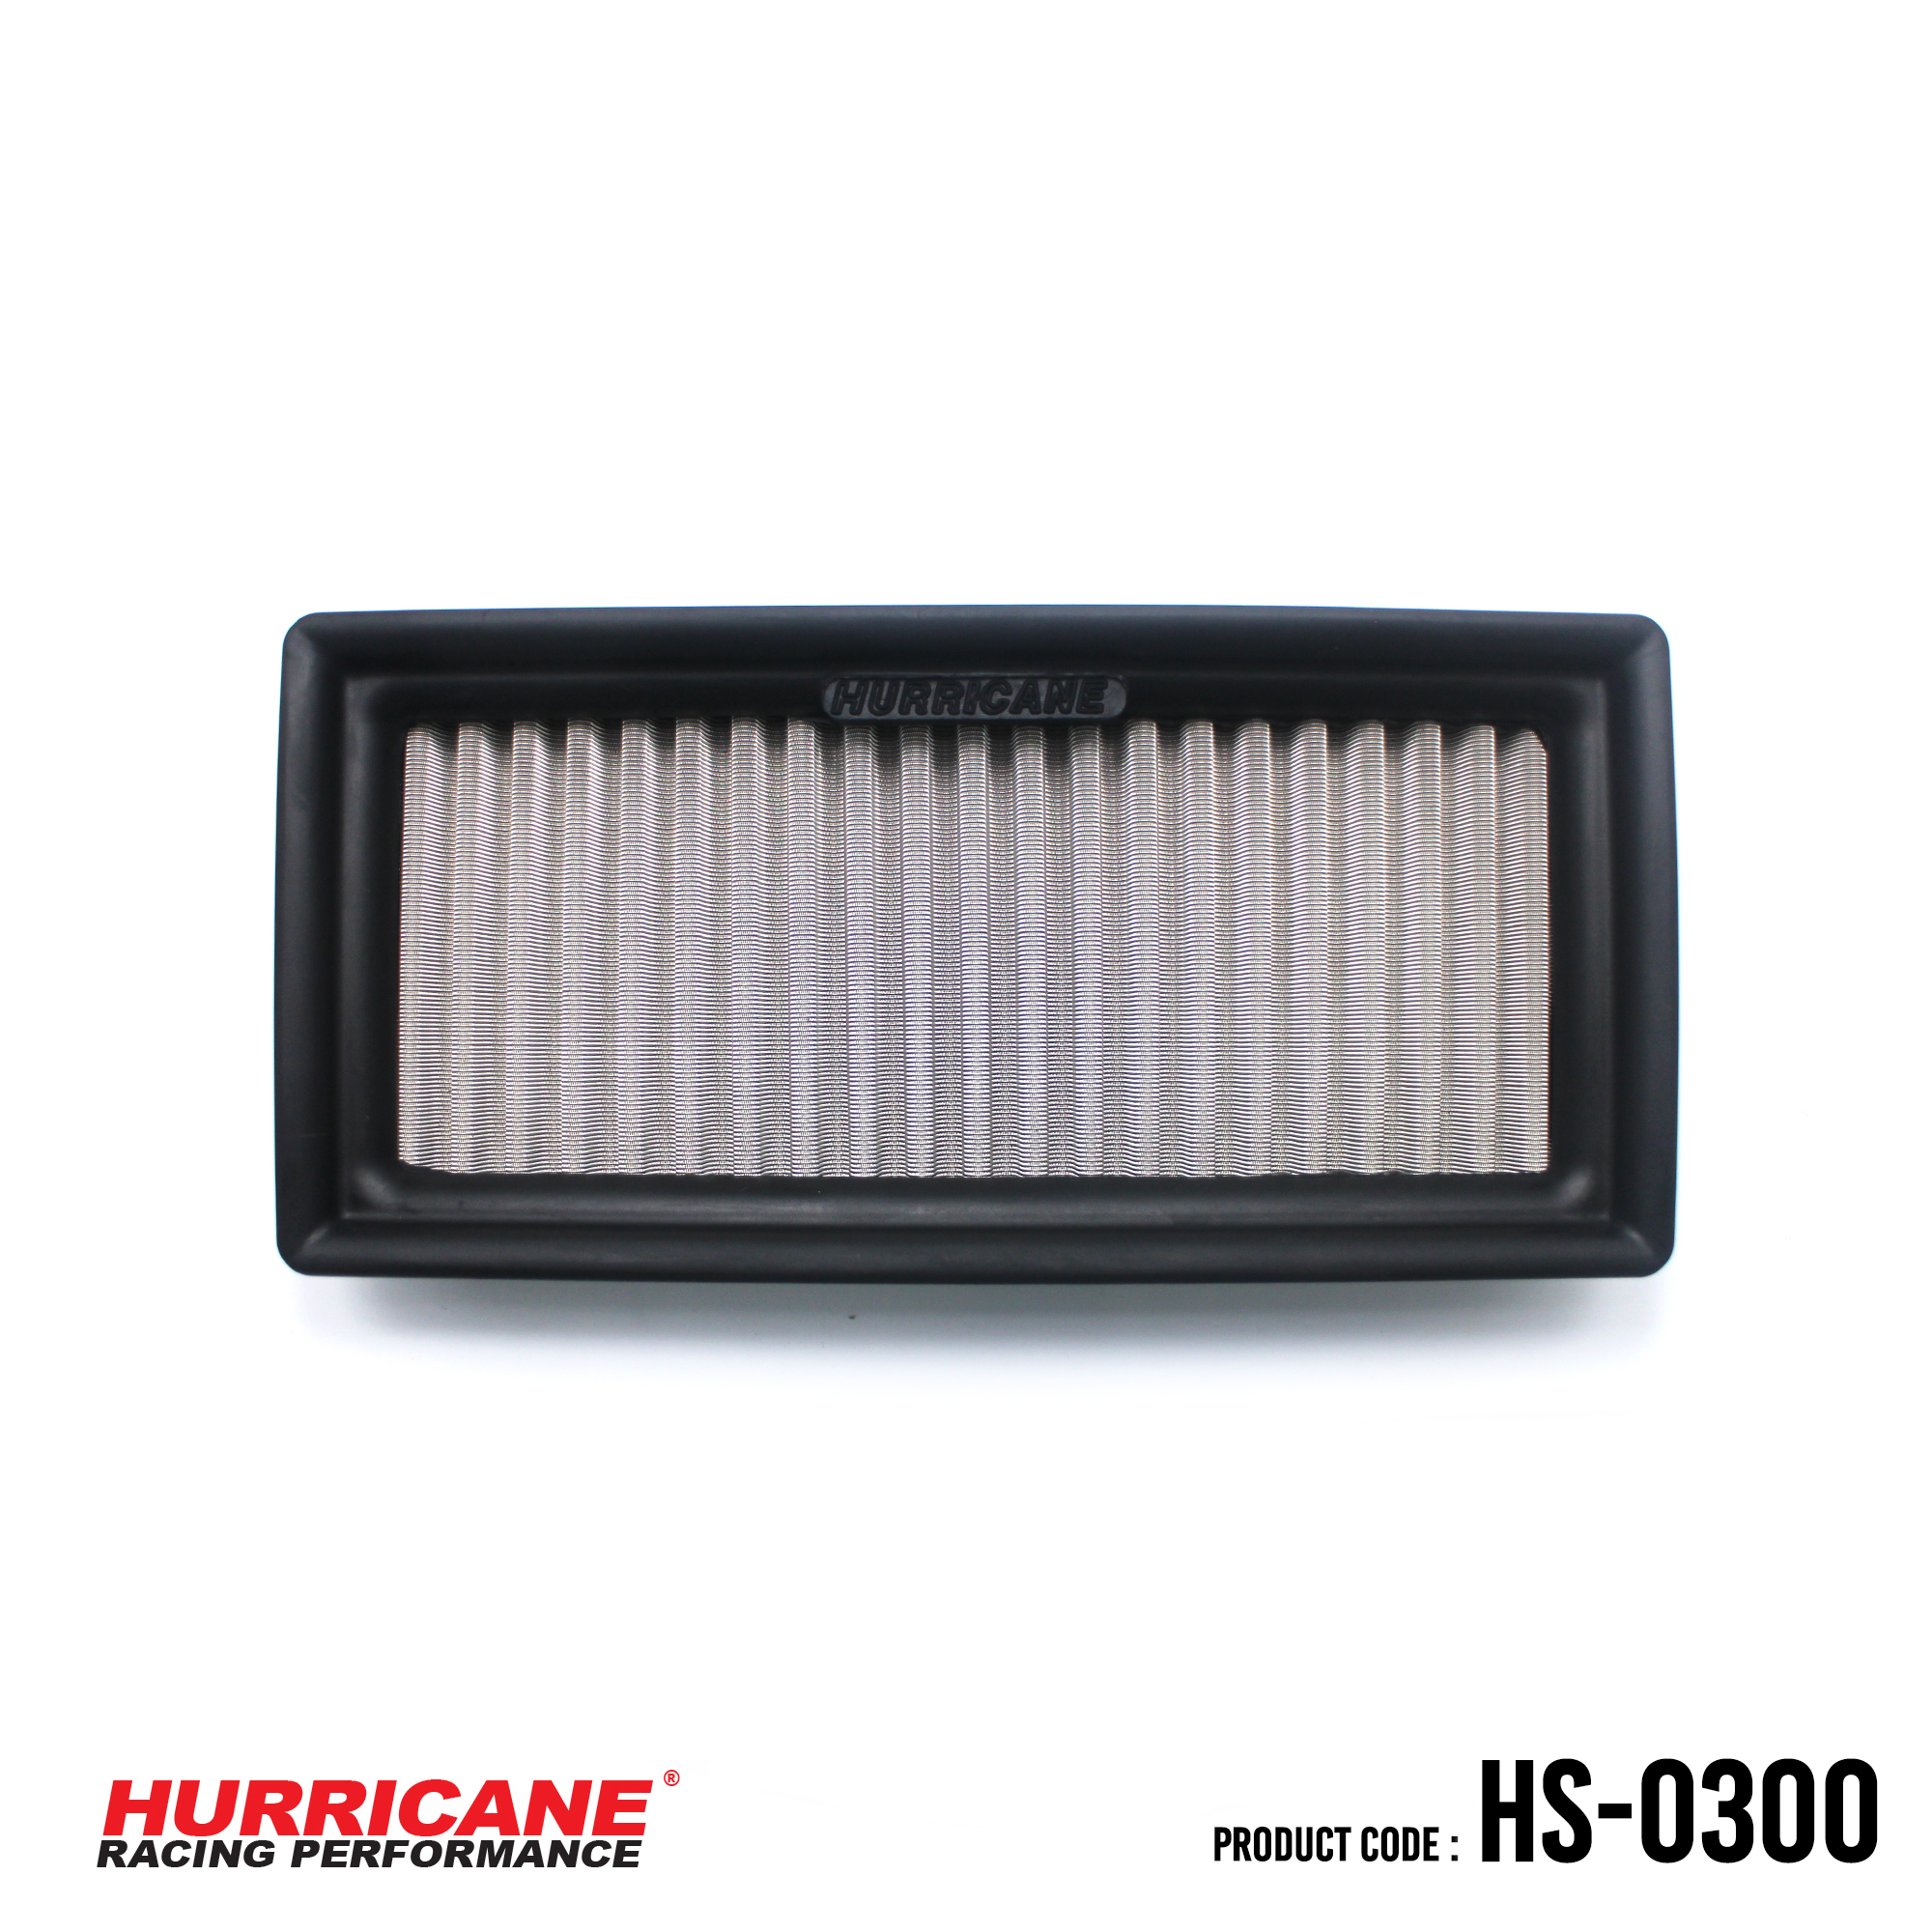 HURRICANE STAINLESS STEEL AIR FILTER FOR HS-0300 MitsubishiToyota